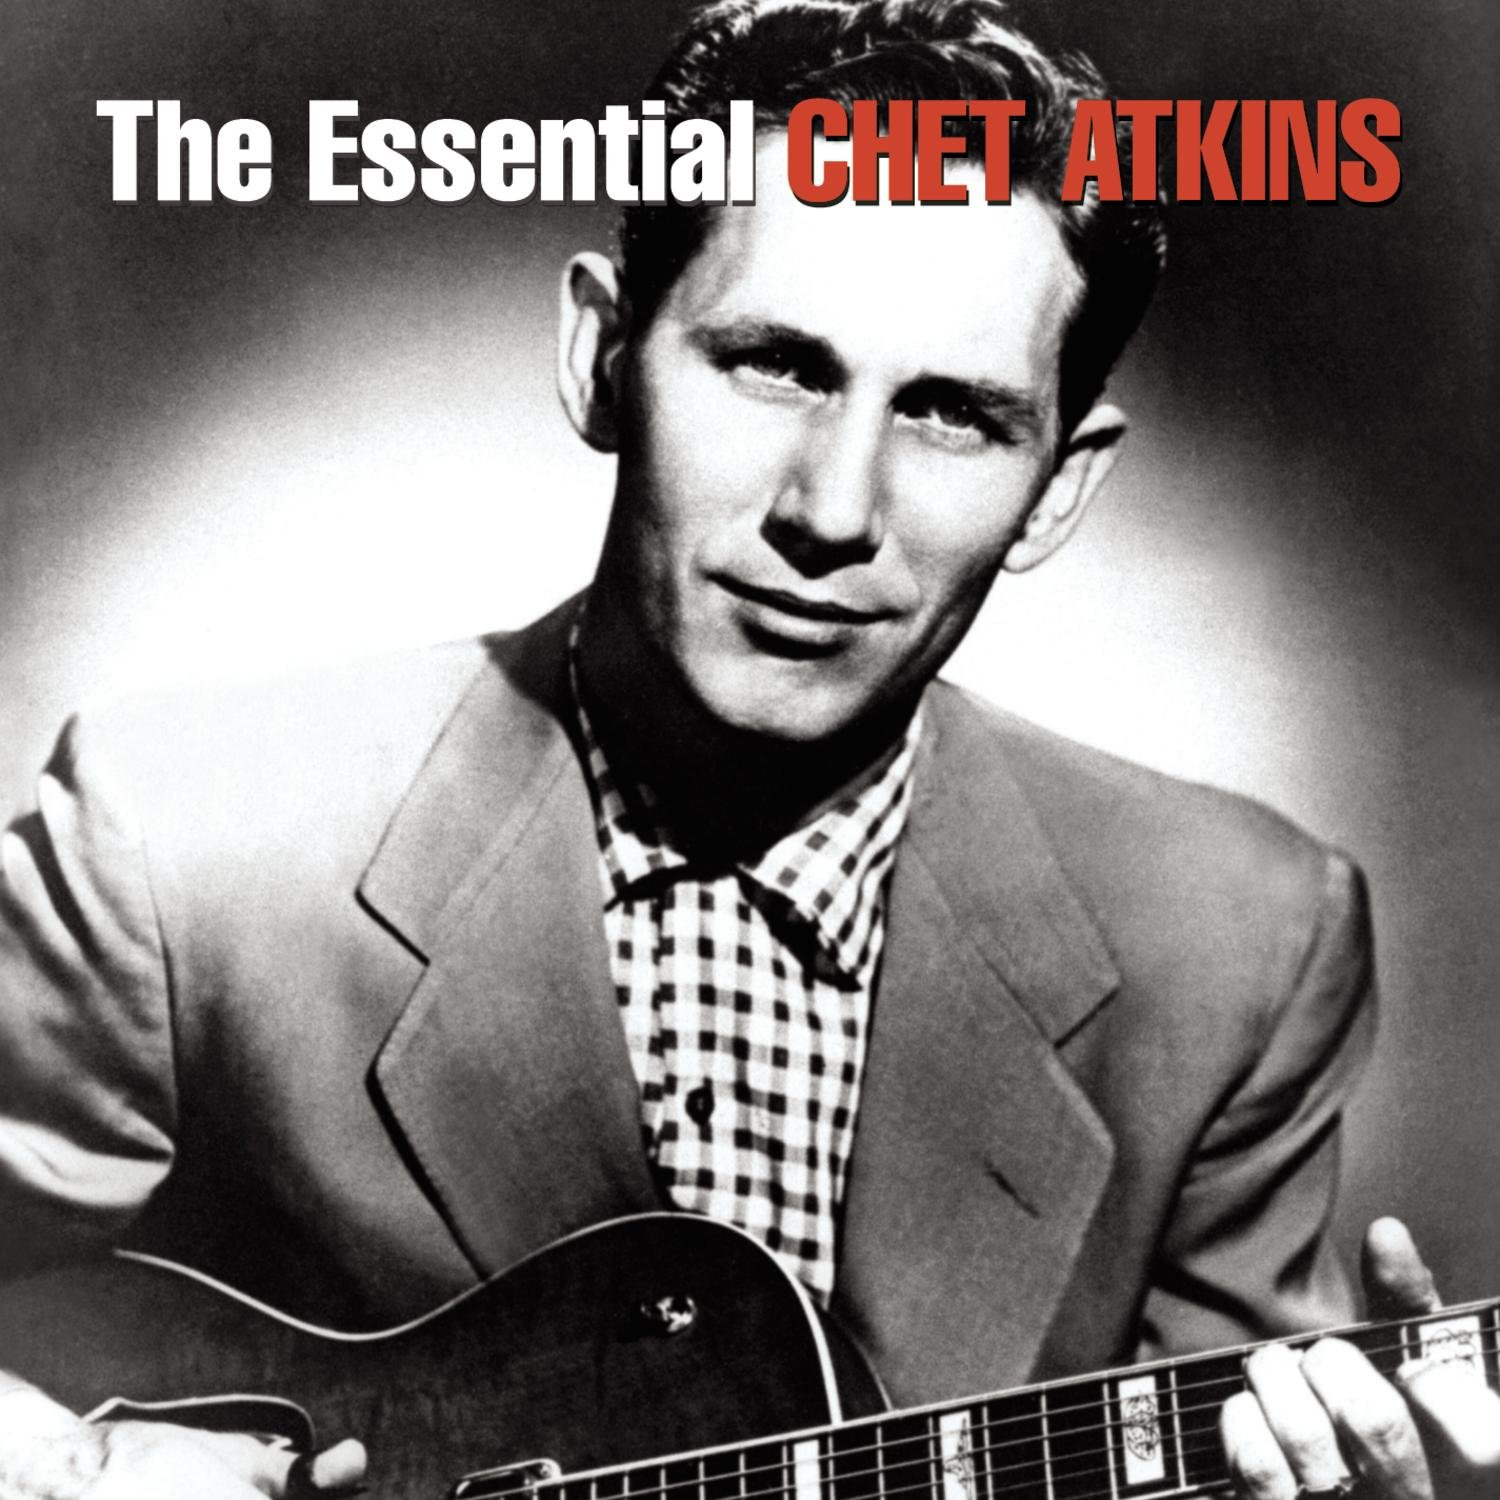 The Essential Chet Atkins by CD